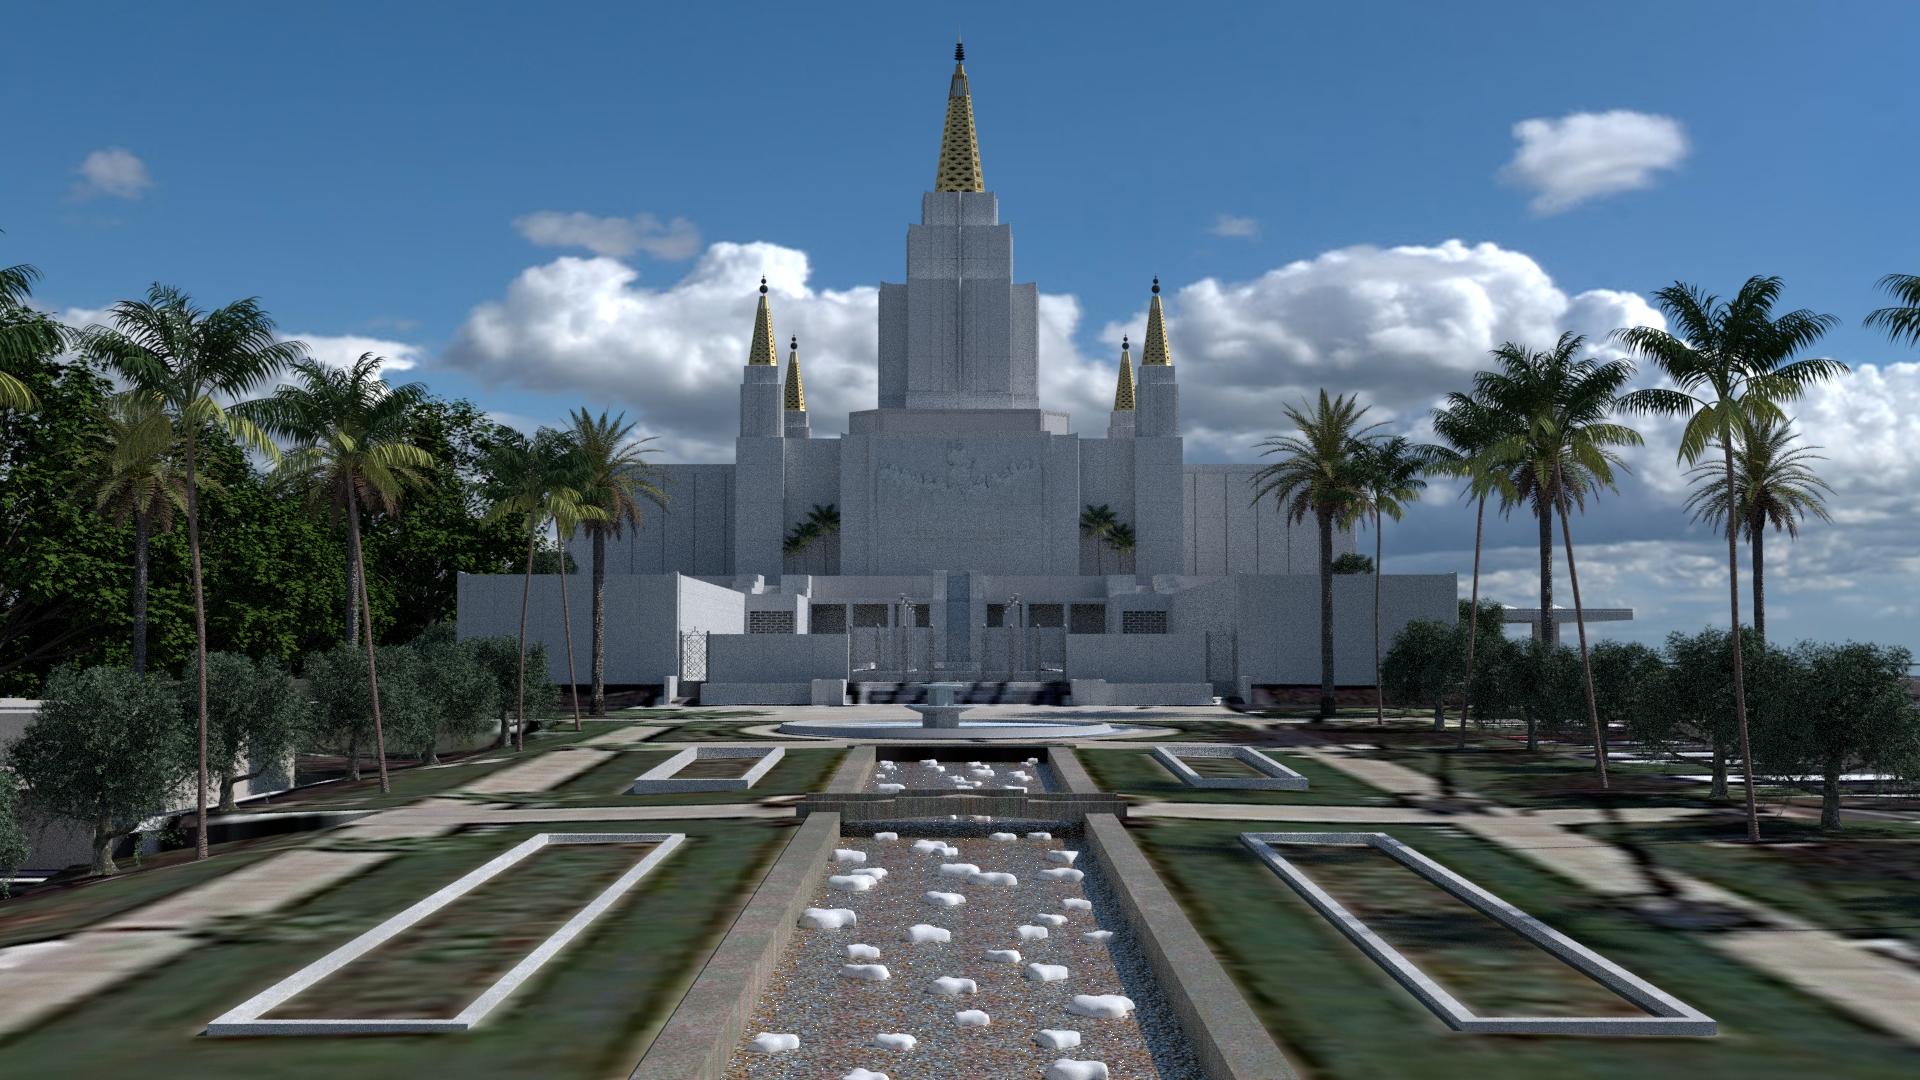 Oakland California temple image